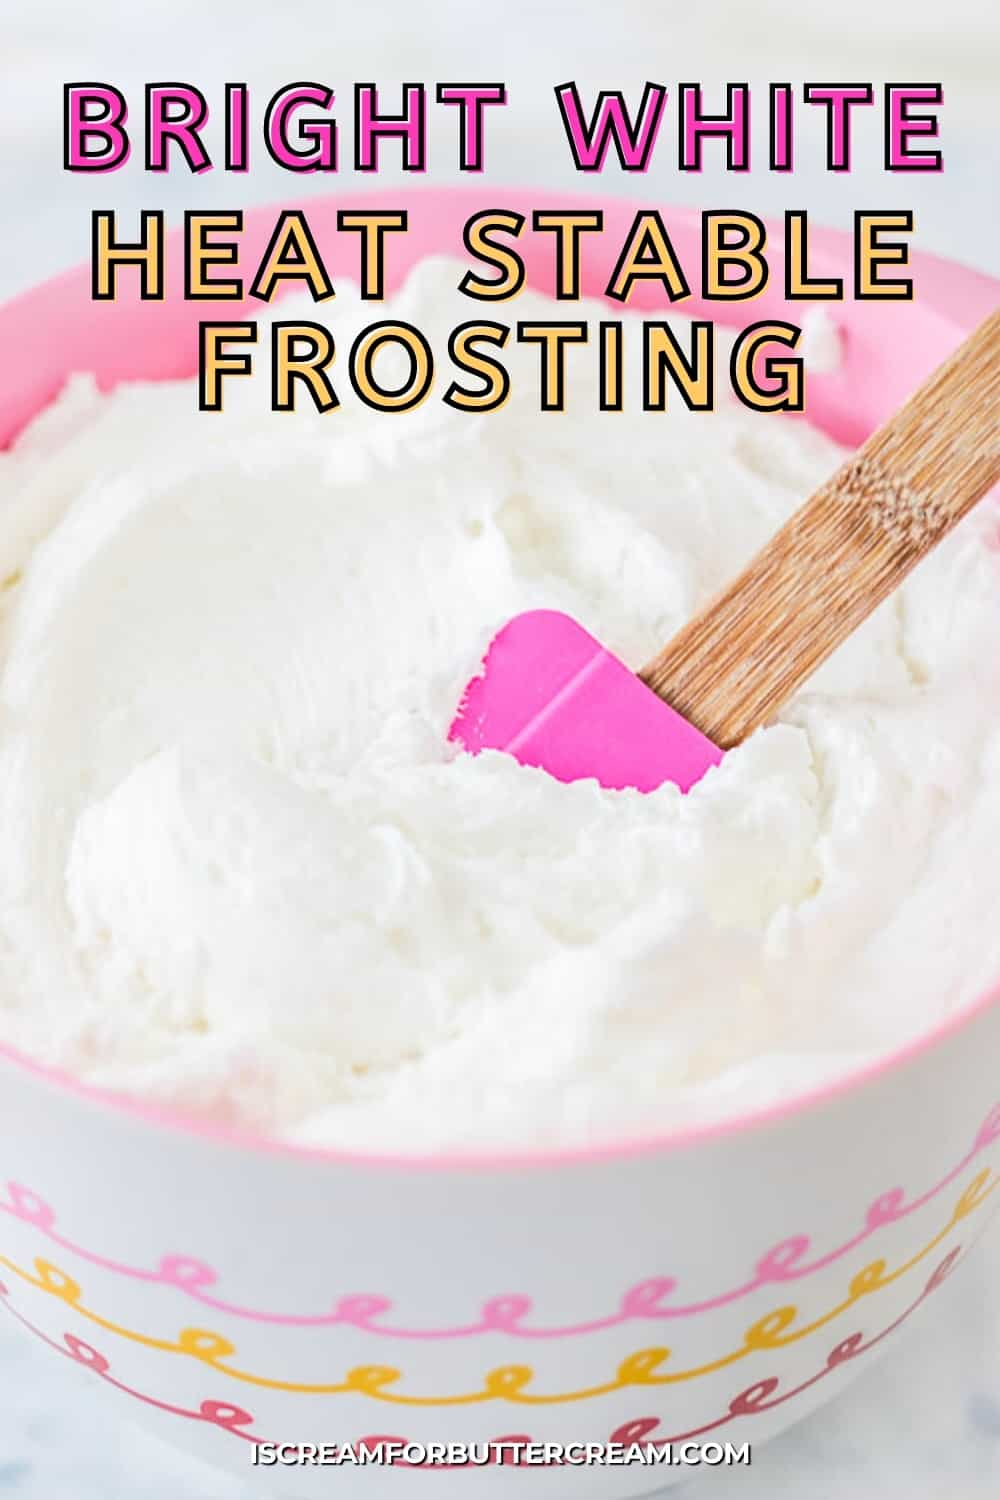 white icing in a pink bowl with text overlay